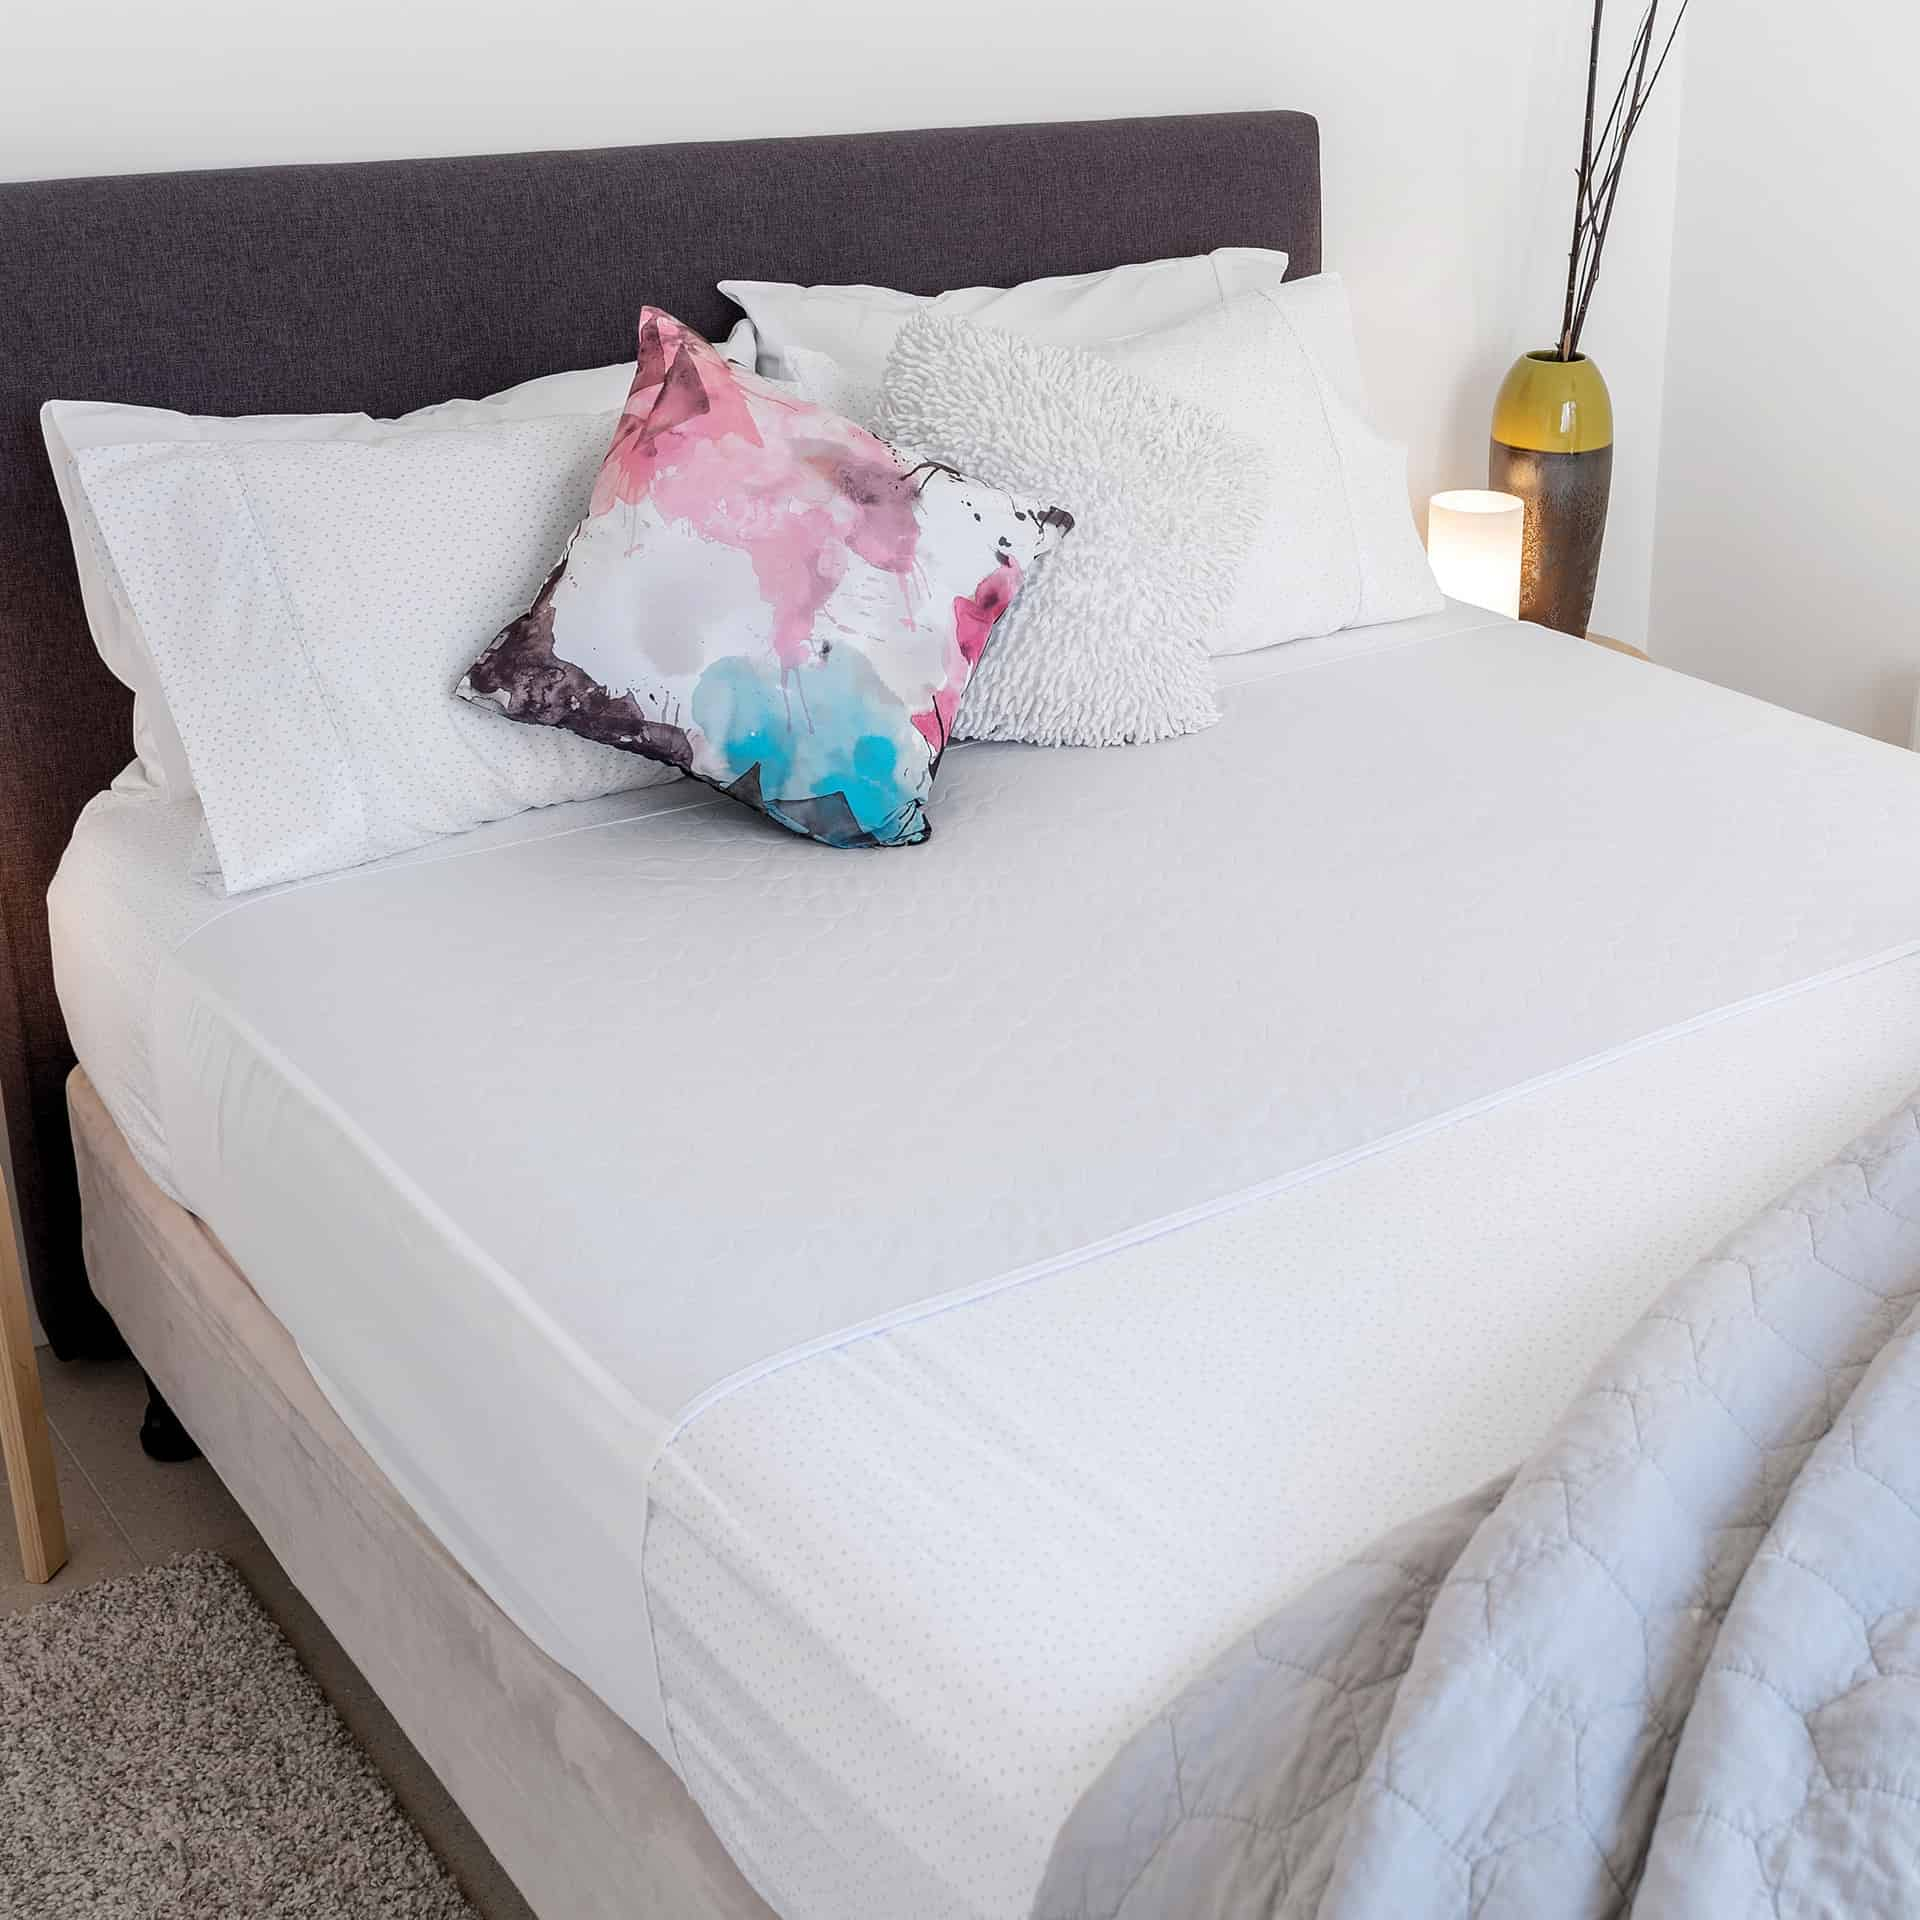 Bed Pad Extra Wide with Tuck-ins Conni White 153 x 85cm 2.5L